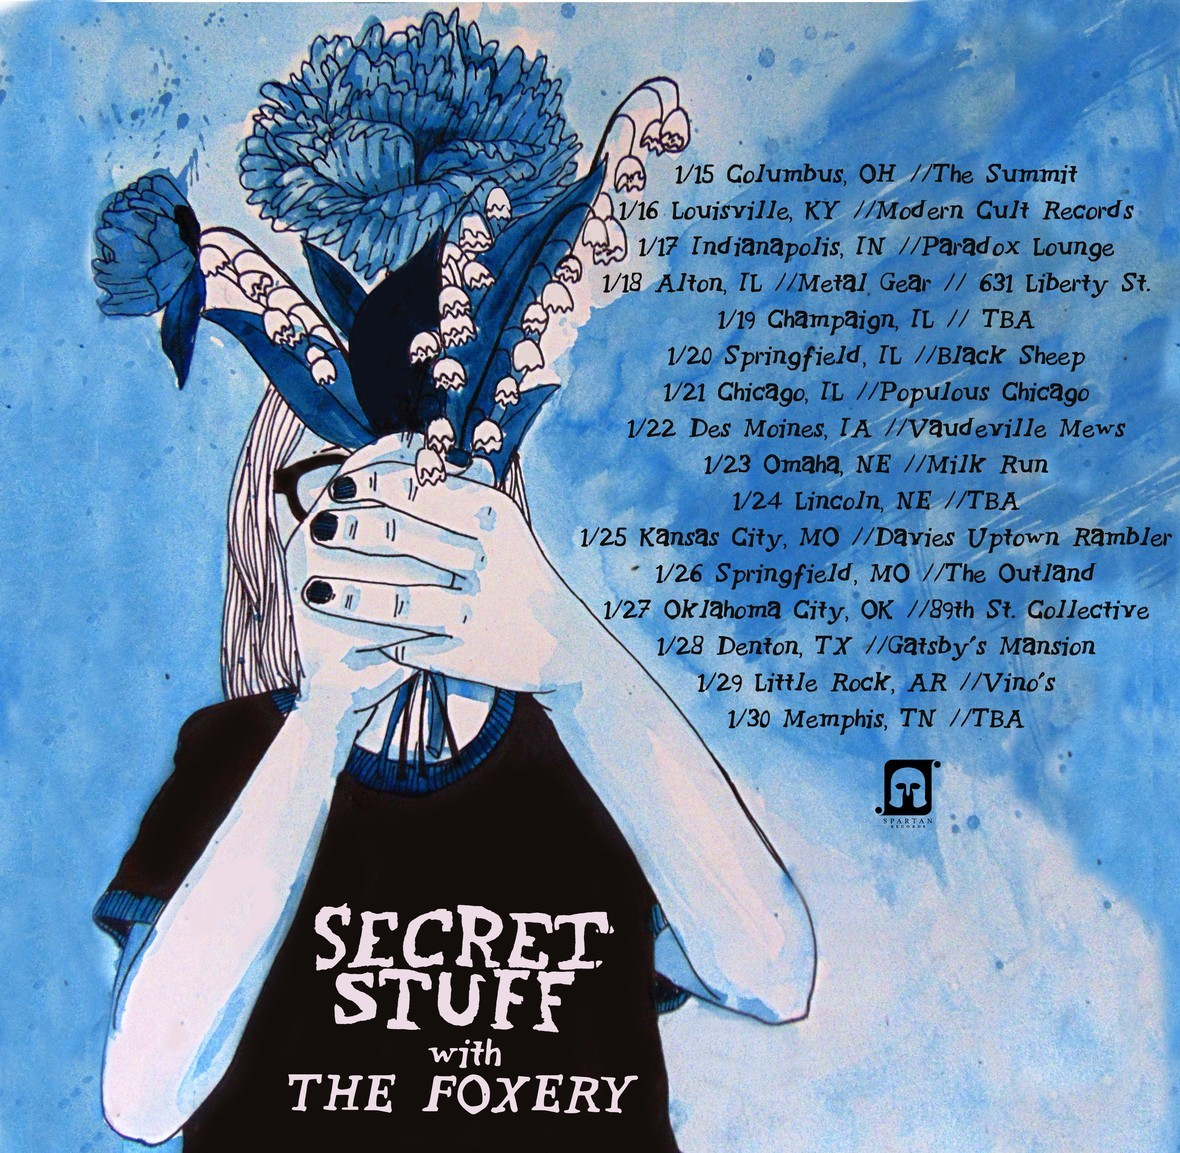 secret stuff foxery tour dates